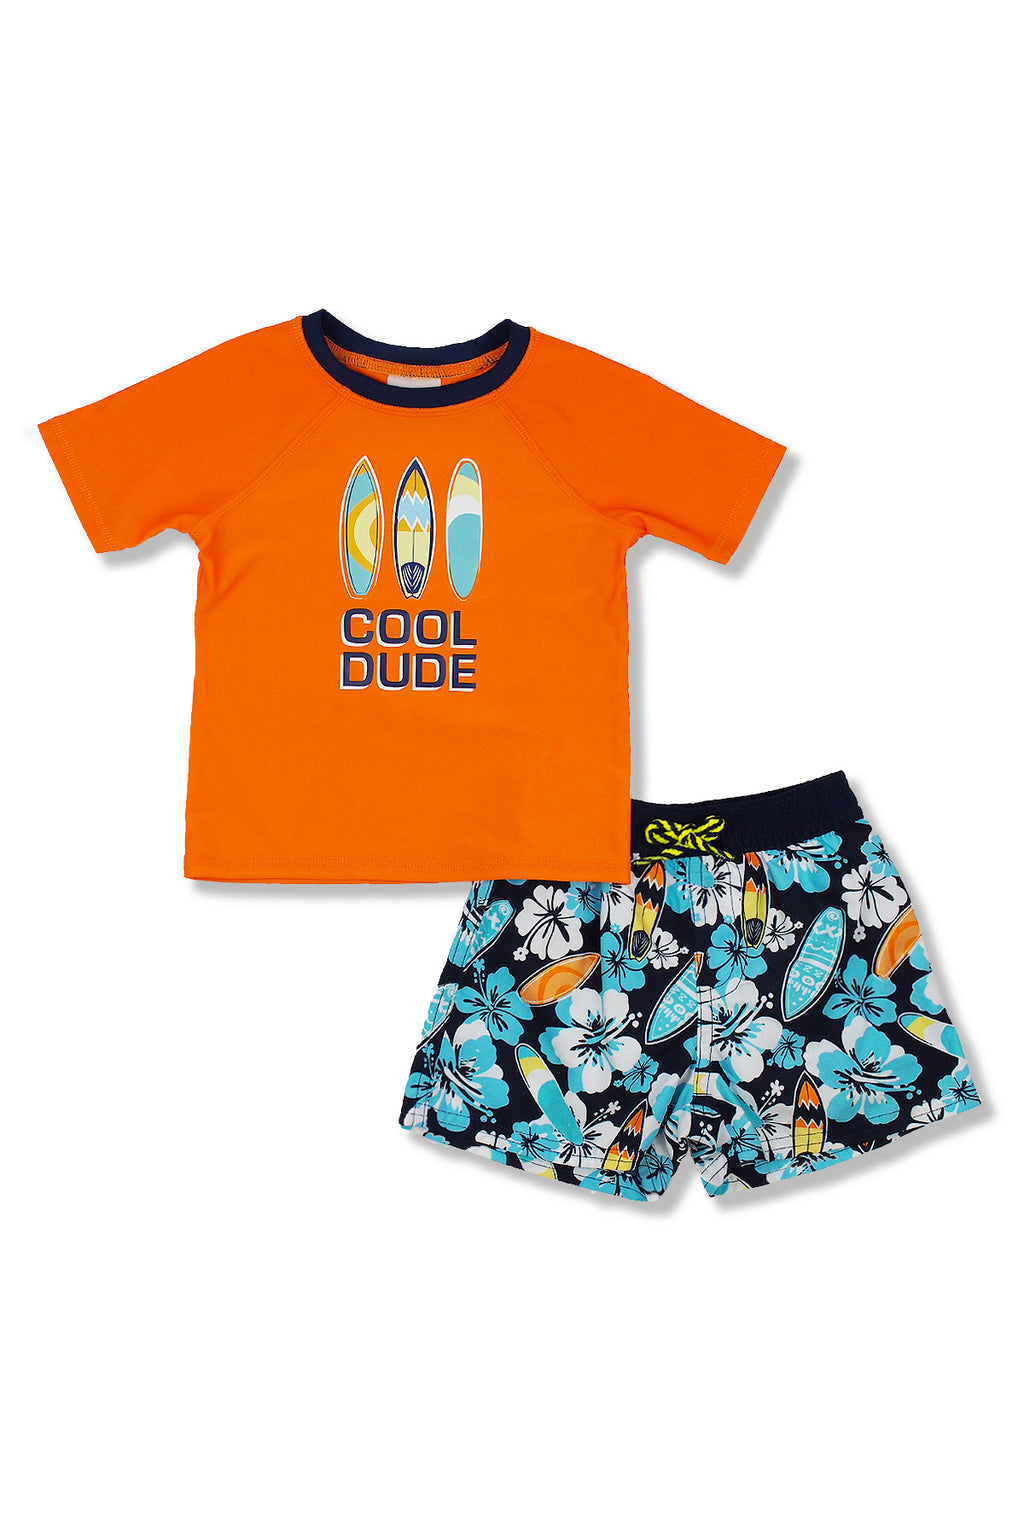 Boys Cool Dude Hibiscus Short Sleeve Rash Guard Set, Orange